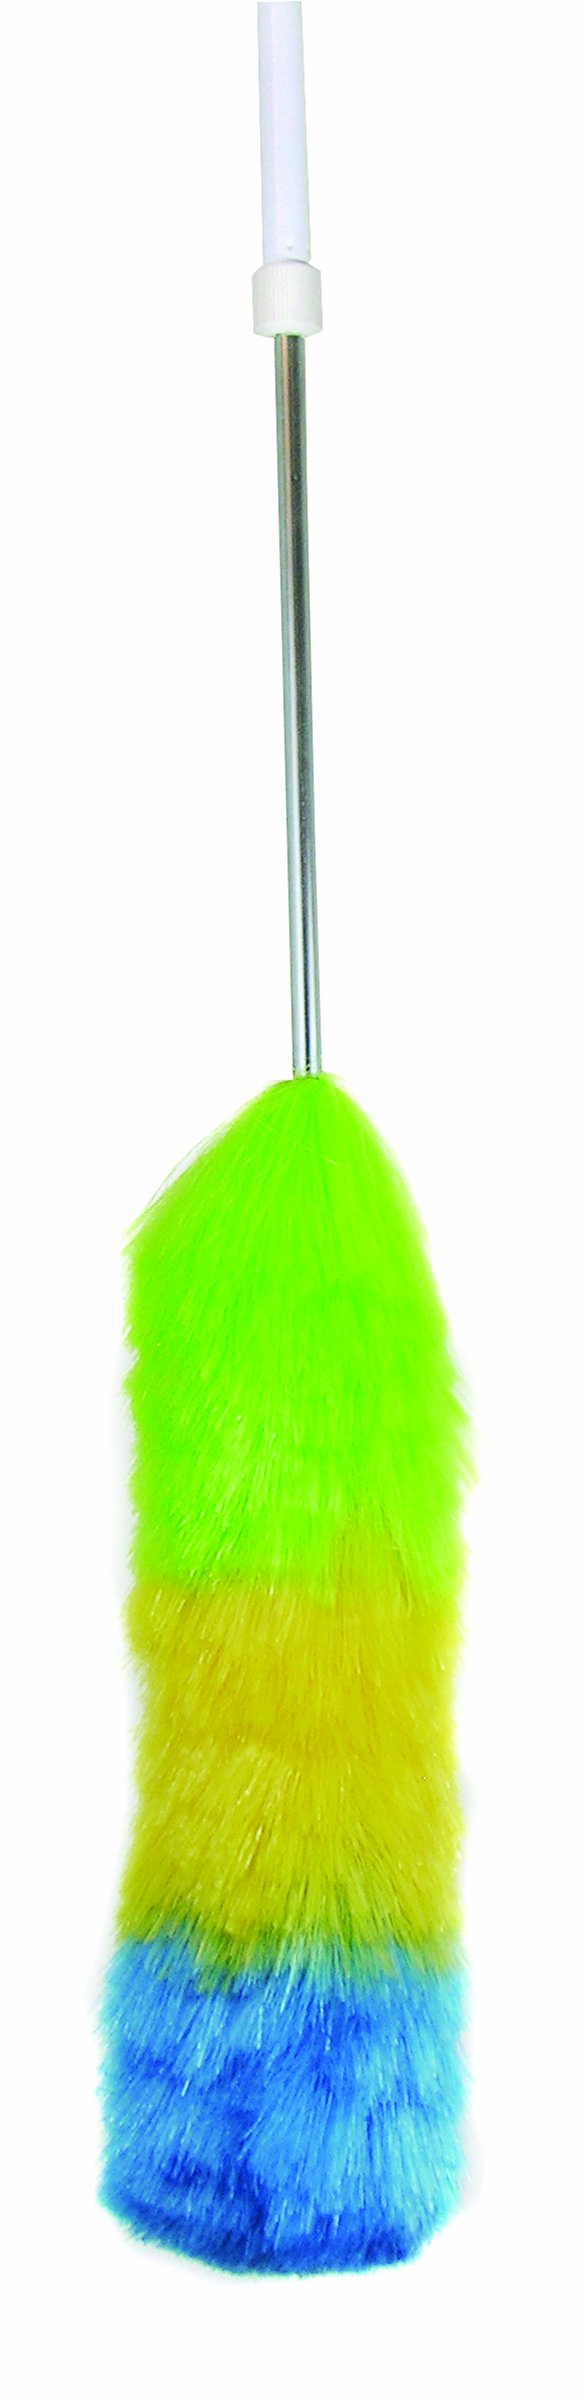 O-Cedar Commercial Electrostatic Duster with Extension Handle by O-Cedar Commercial